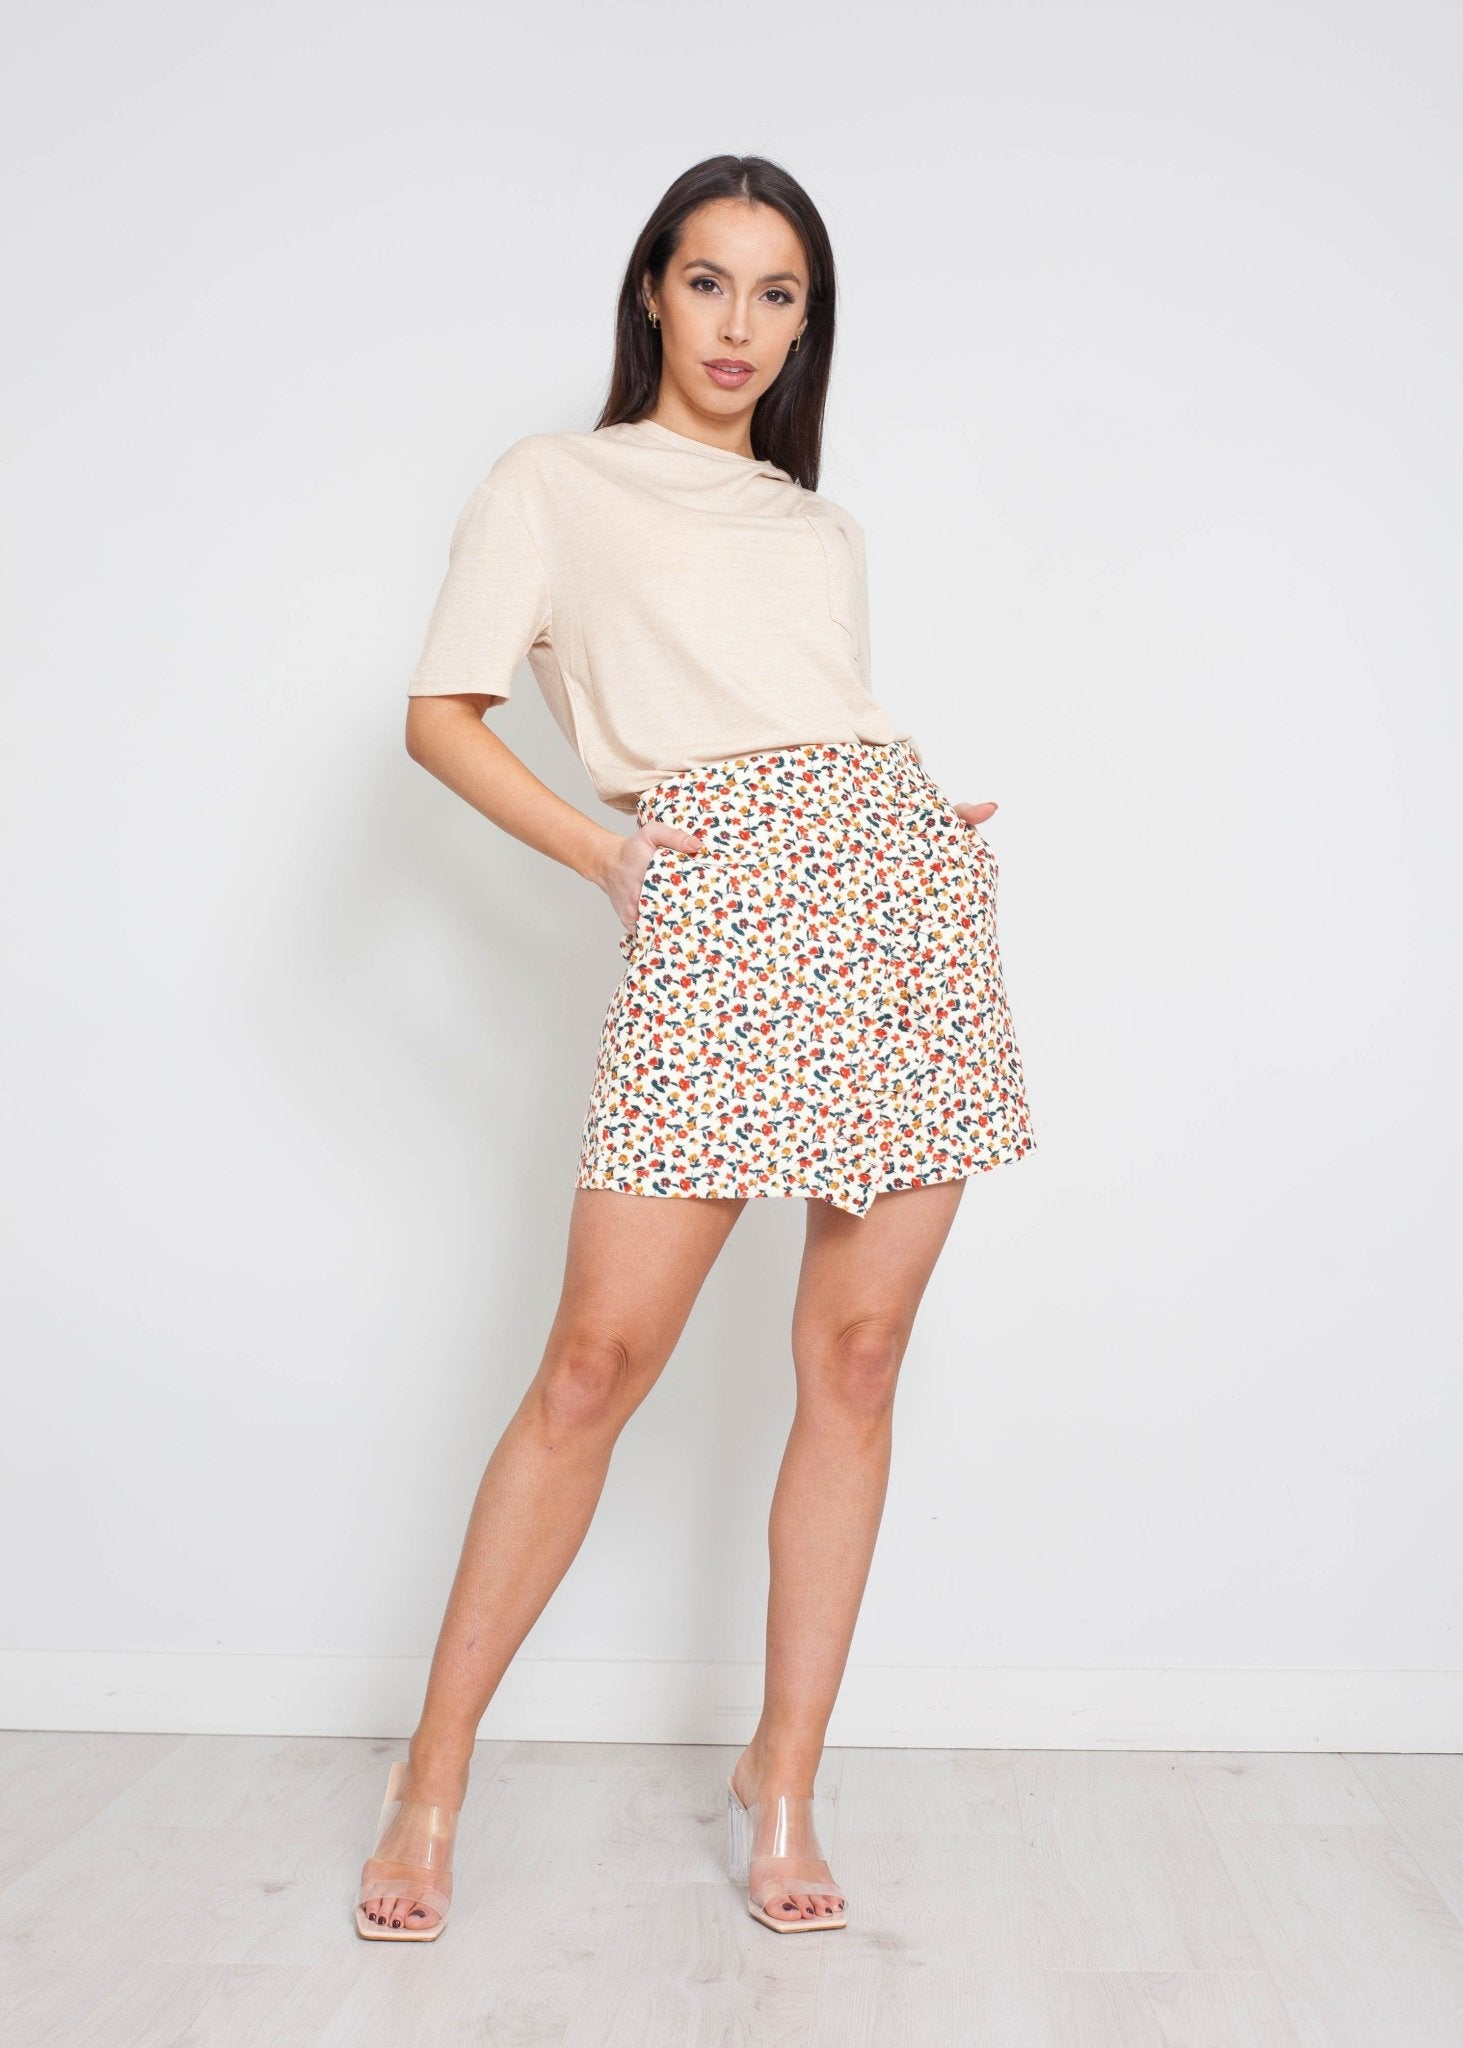 Daisy T-Shirt With Pocket In Beige - The Walk in Wardrobe